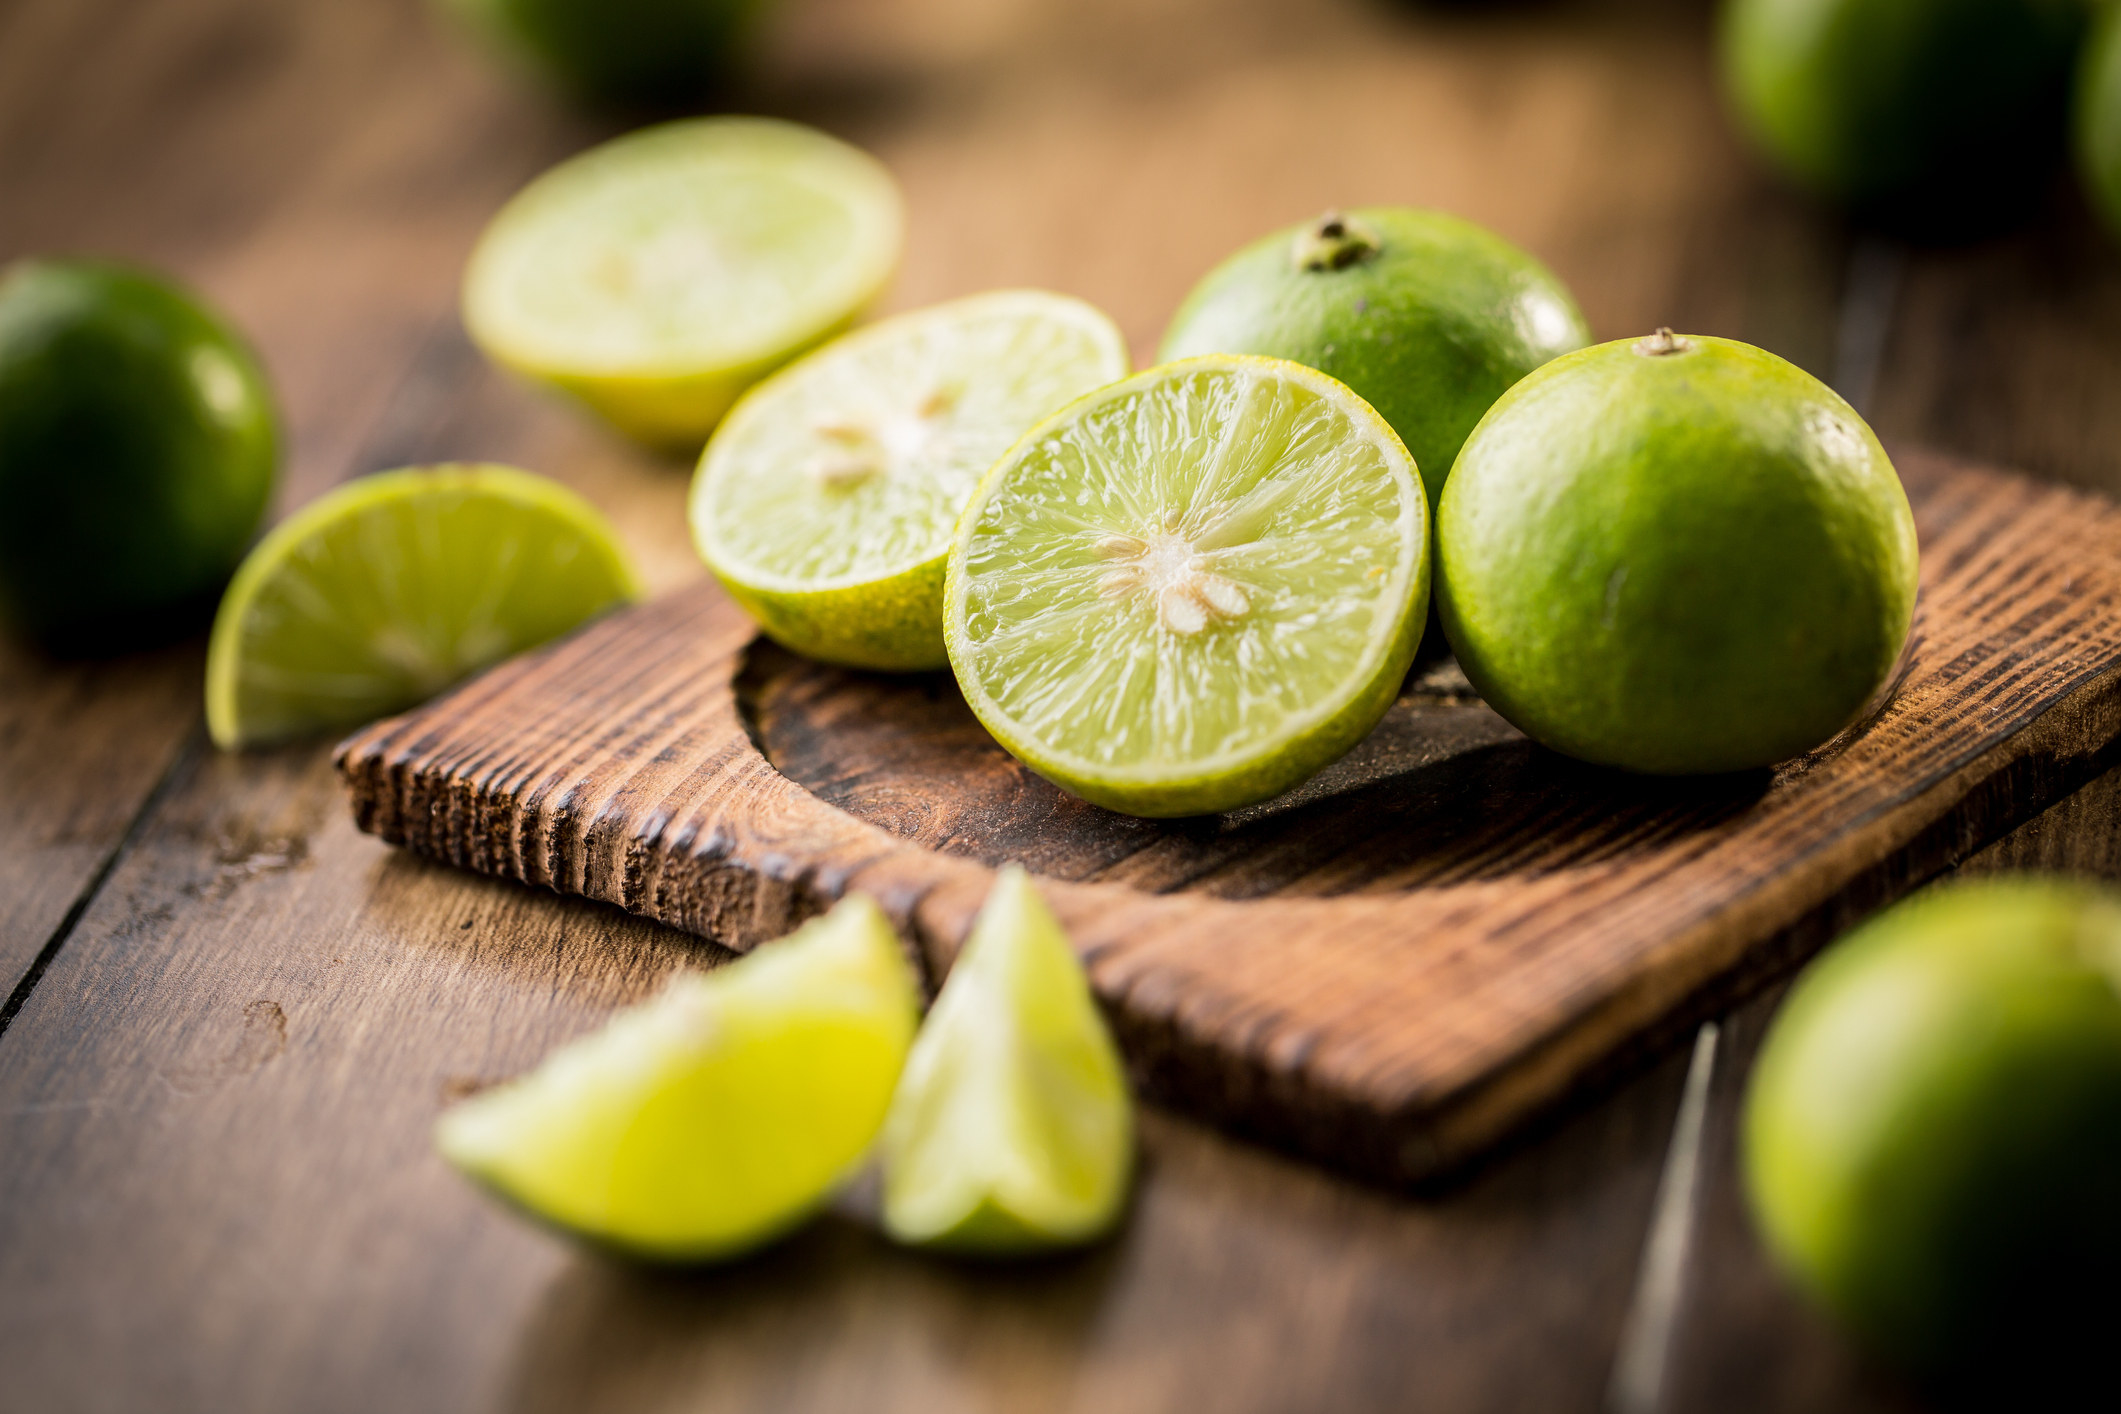 Sliced limes on a wooden cutting board.